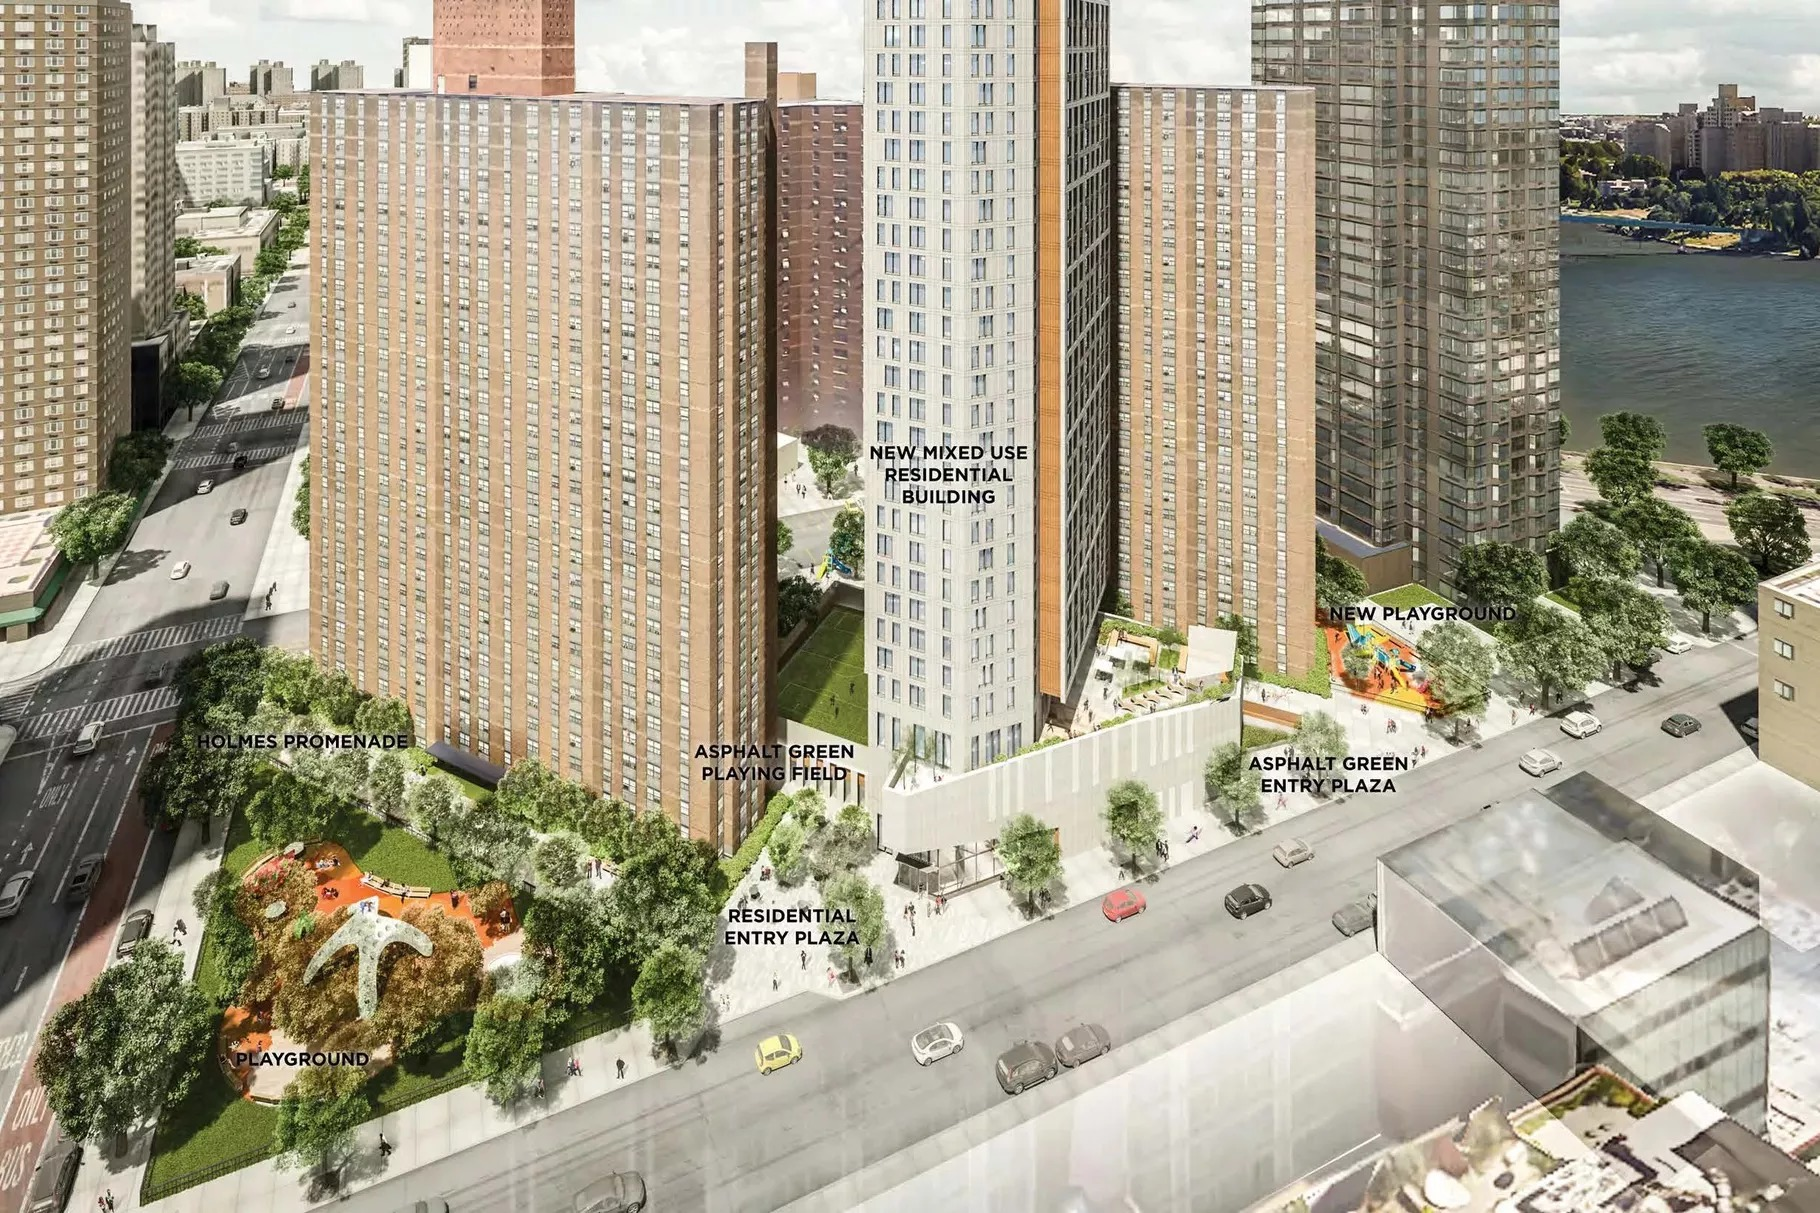 NYCHA backtracks on 50-story Upper East Side infill tower